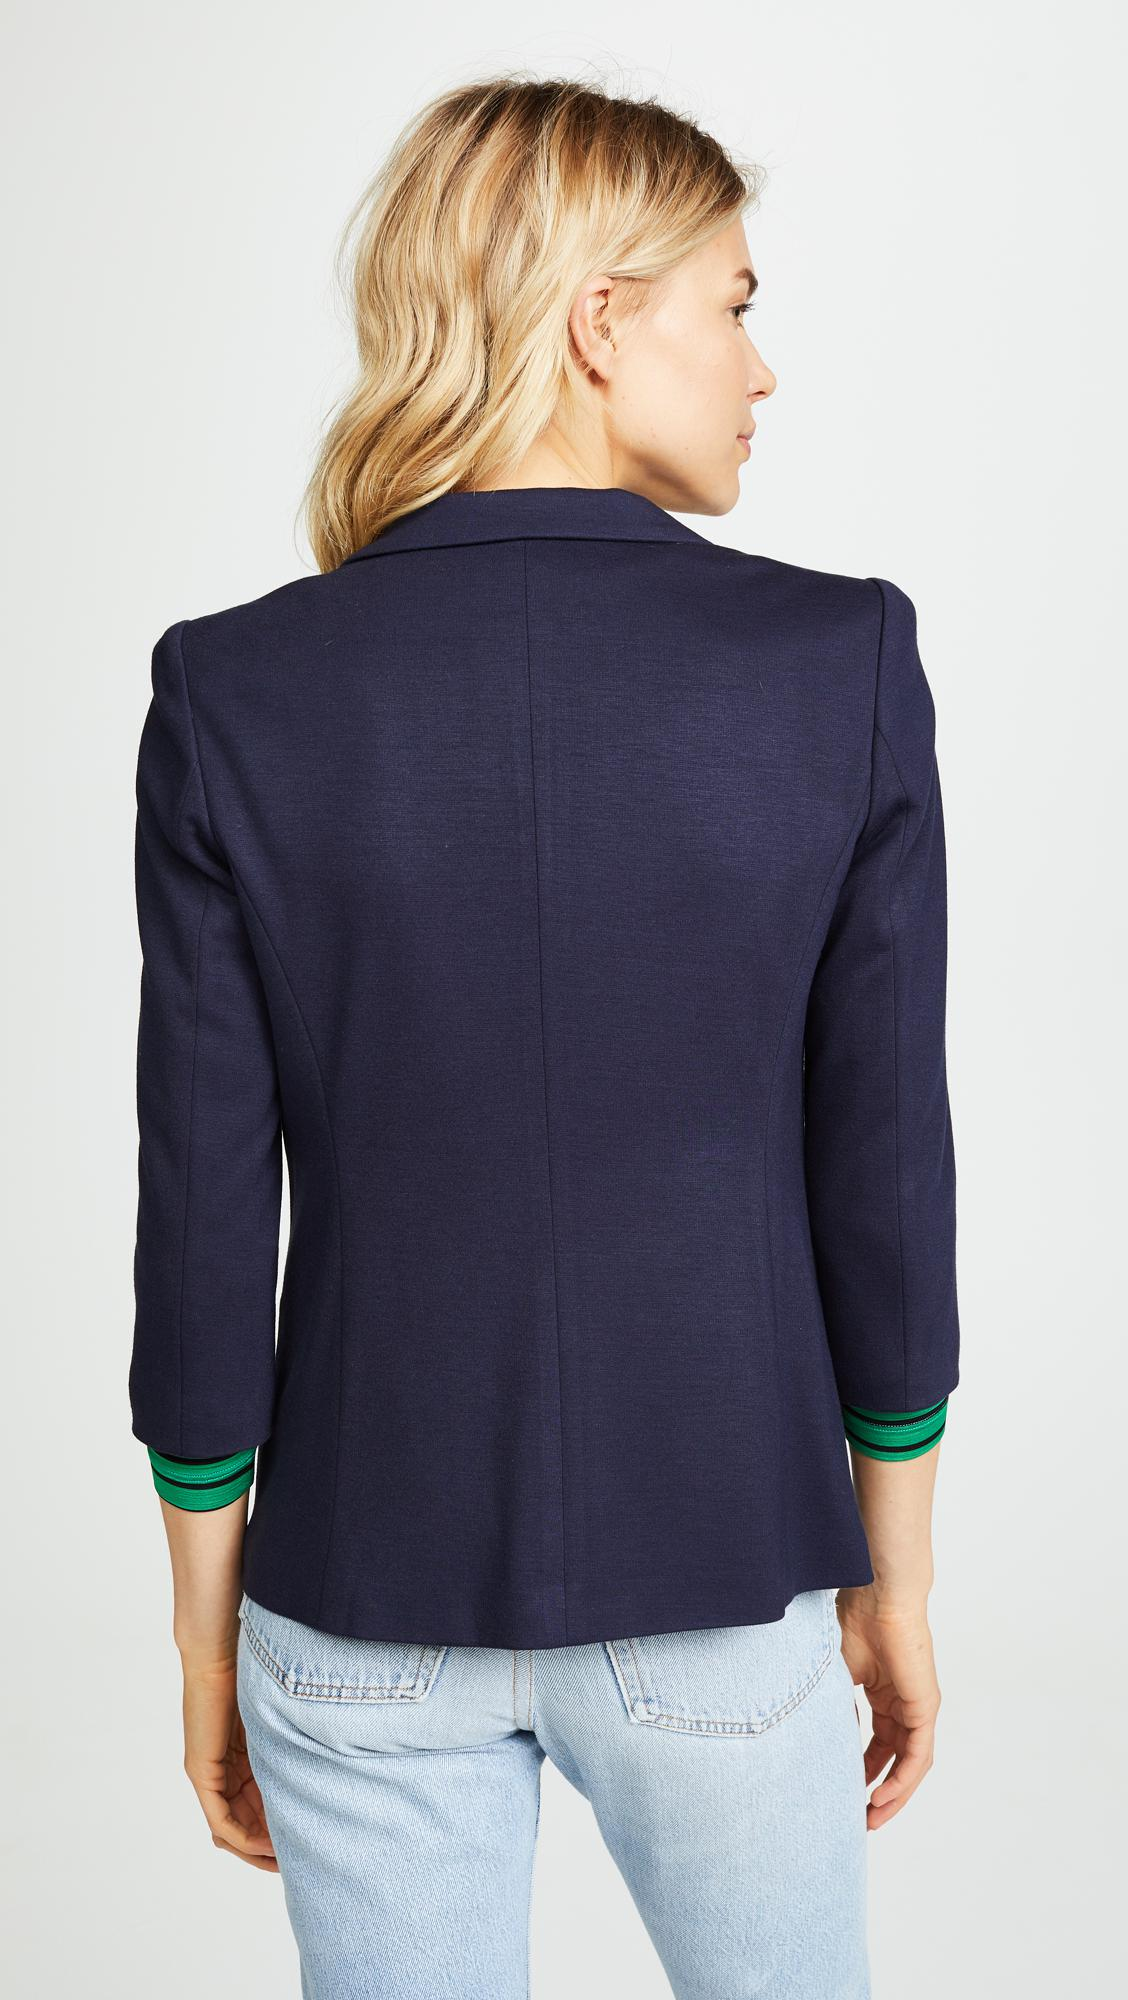 James Jeans Synthetic Shrunken One-button Tuxedo Jacket, Navy in Blue